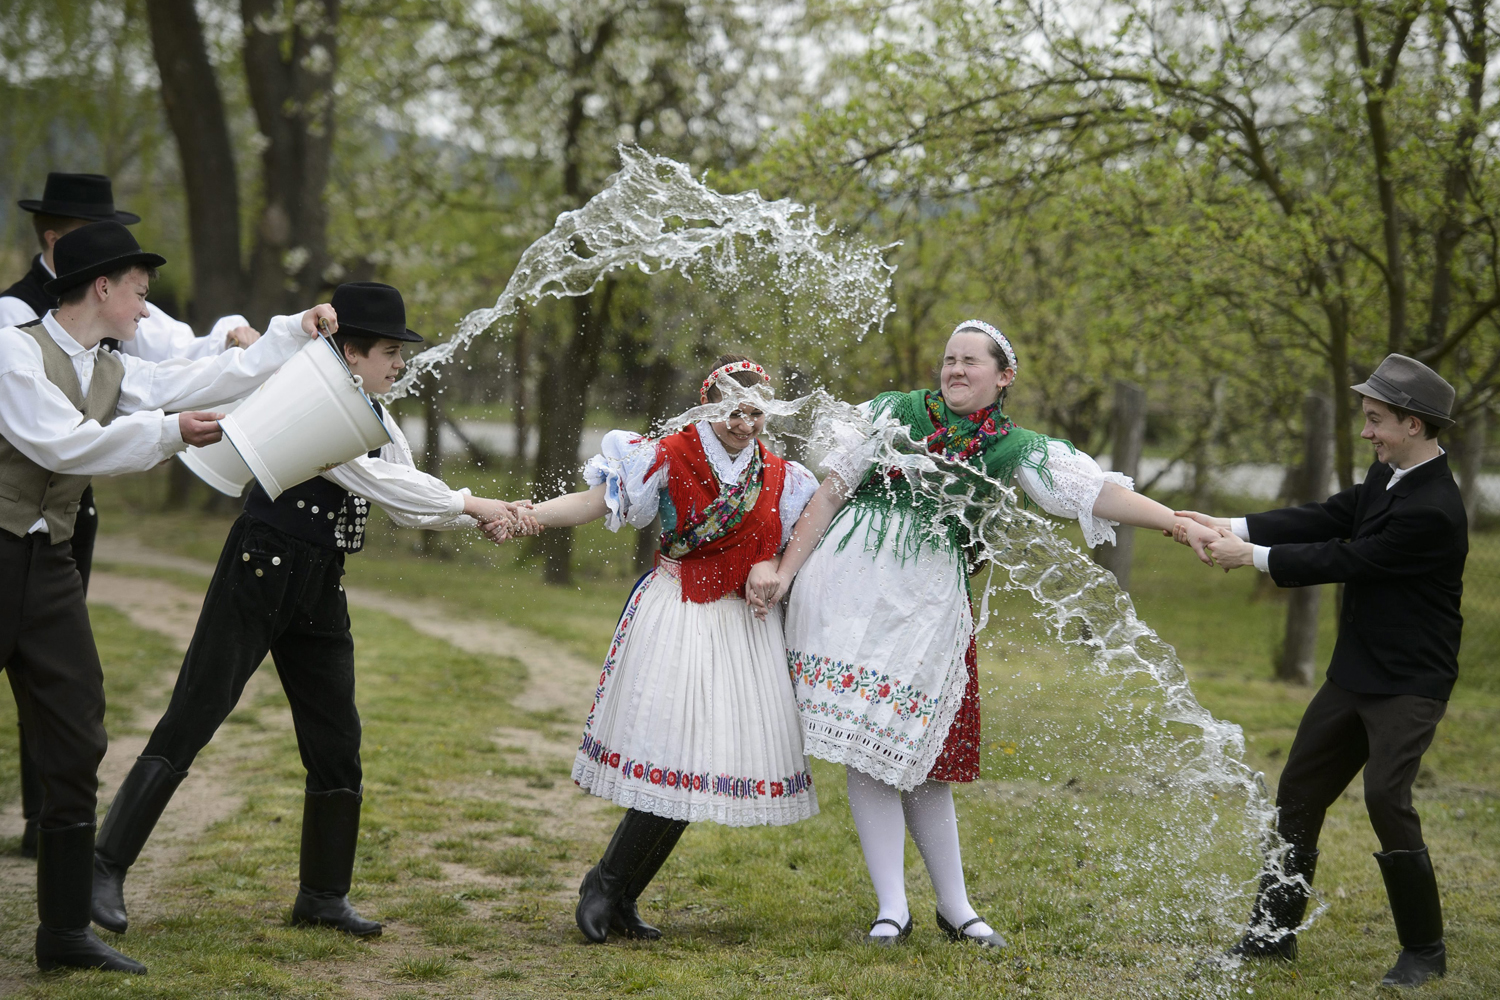 Young men dressed in traditional Paloc folk costumes pour water from buckets on two young women performing an Easter folk tradition for the Easter sprinkling in Kazar, some 100 km northeast of Budapest, Hungary, April 18, 2014.